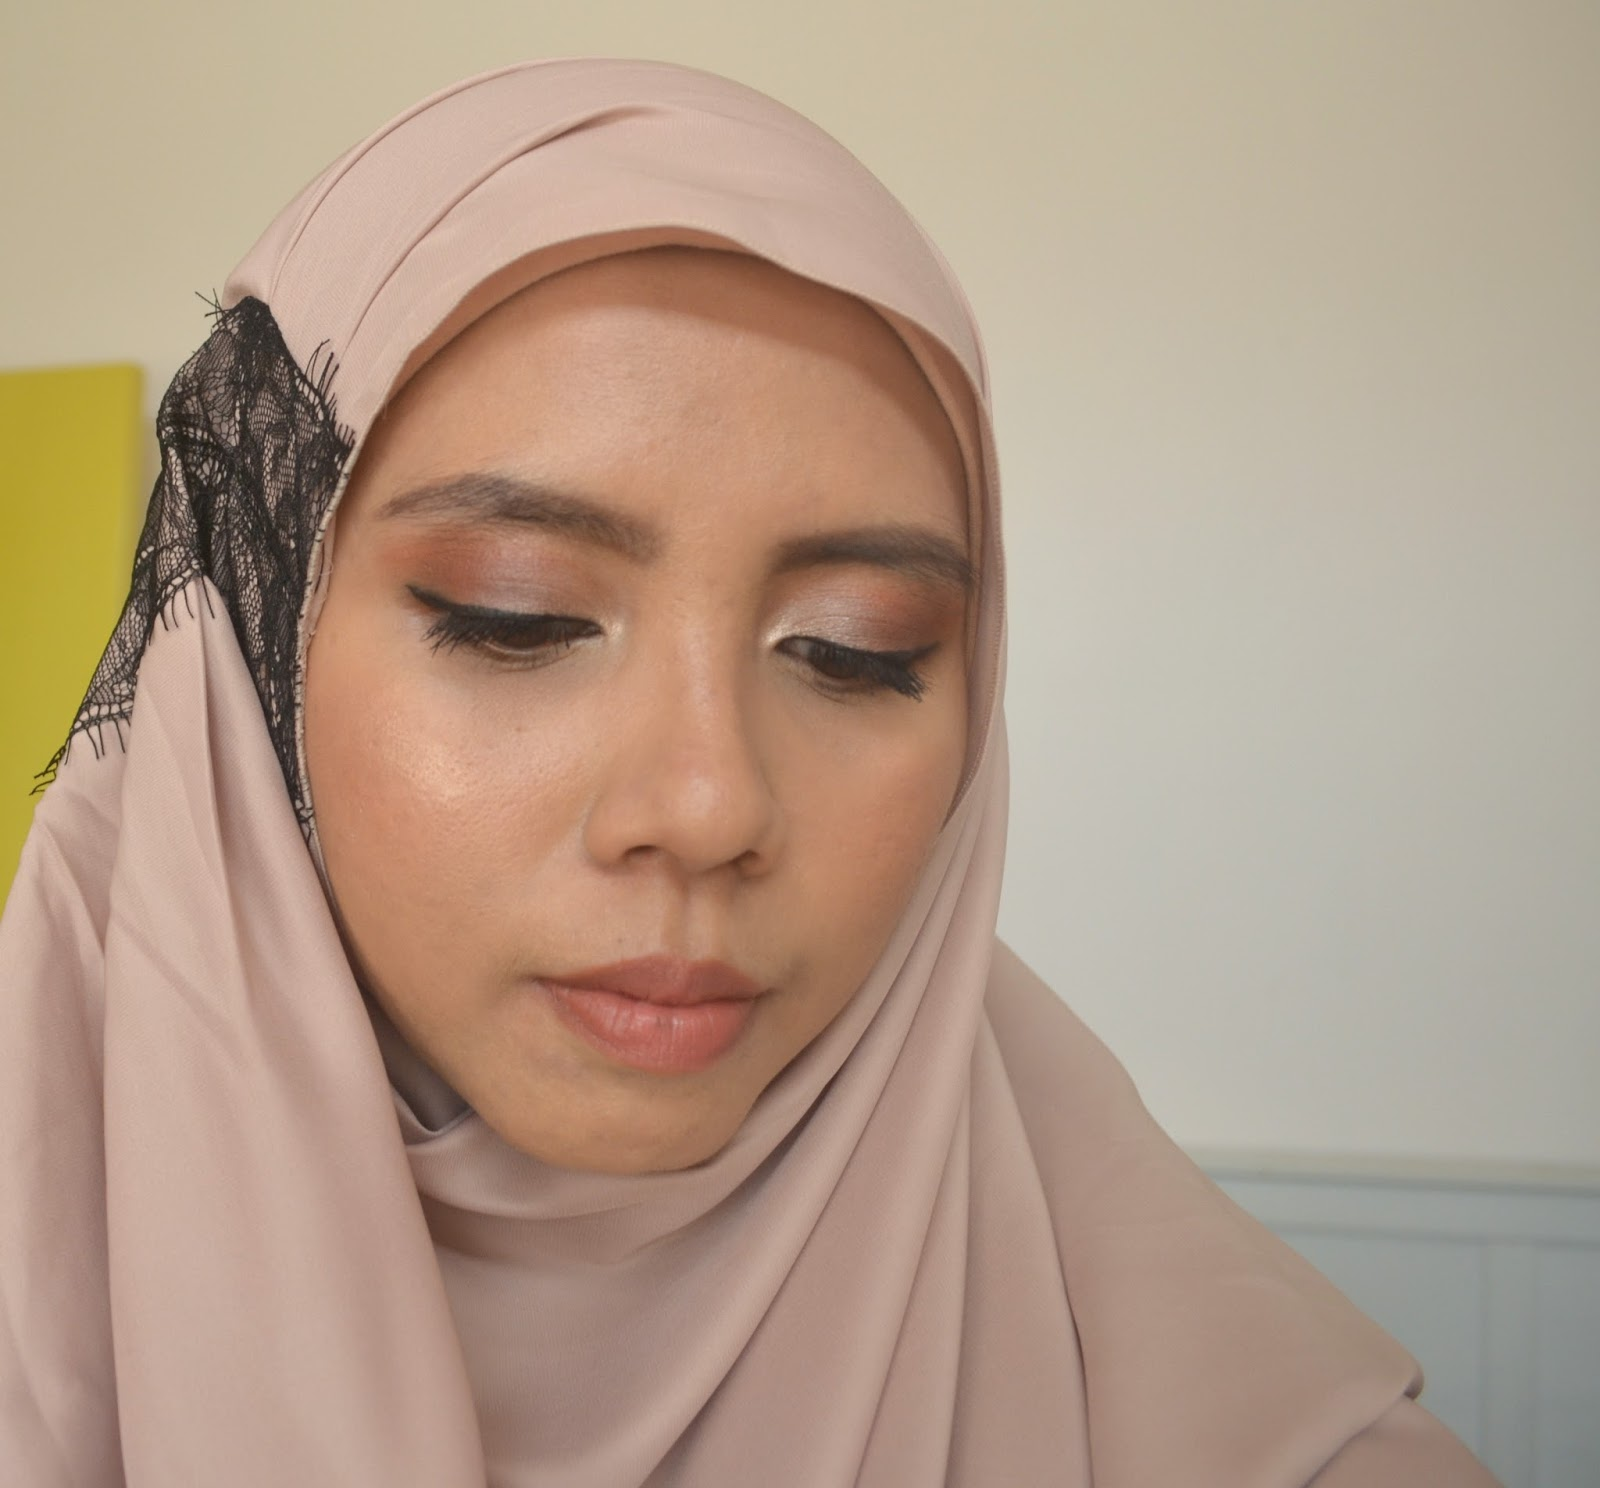 Fatimahearts Nude And Earthy Makeup In Collaboration With Sleeping With Makeup